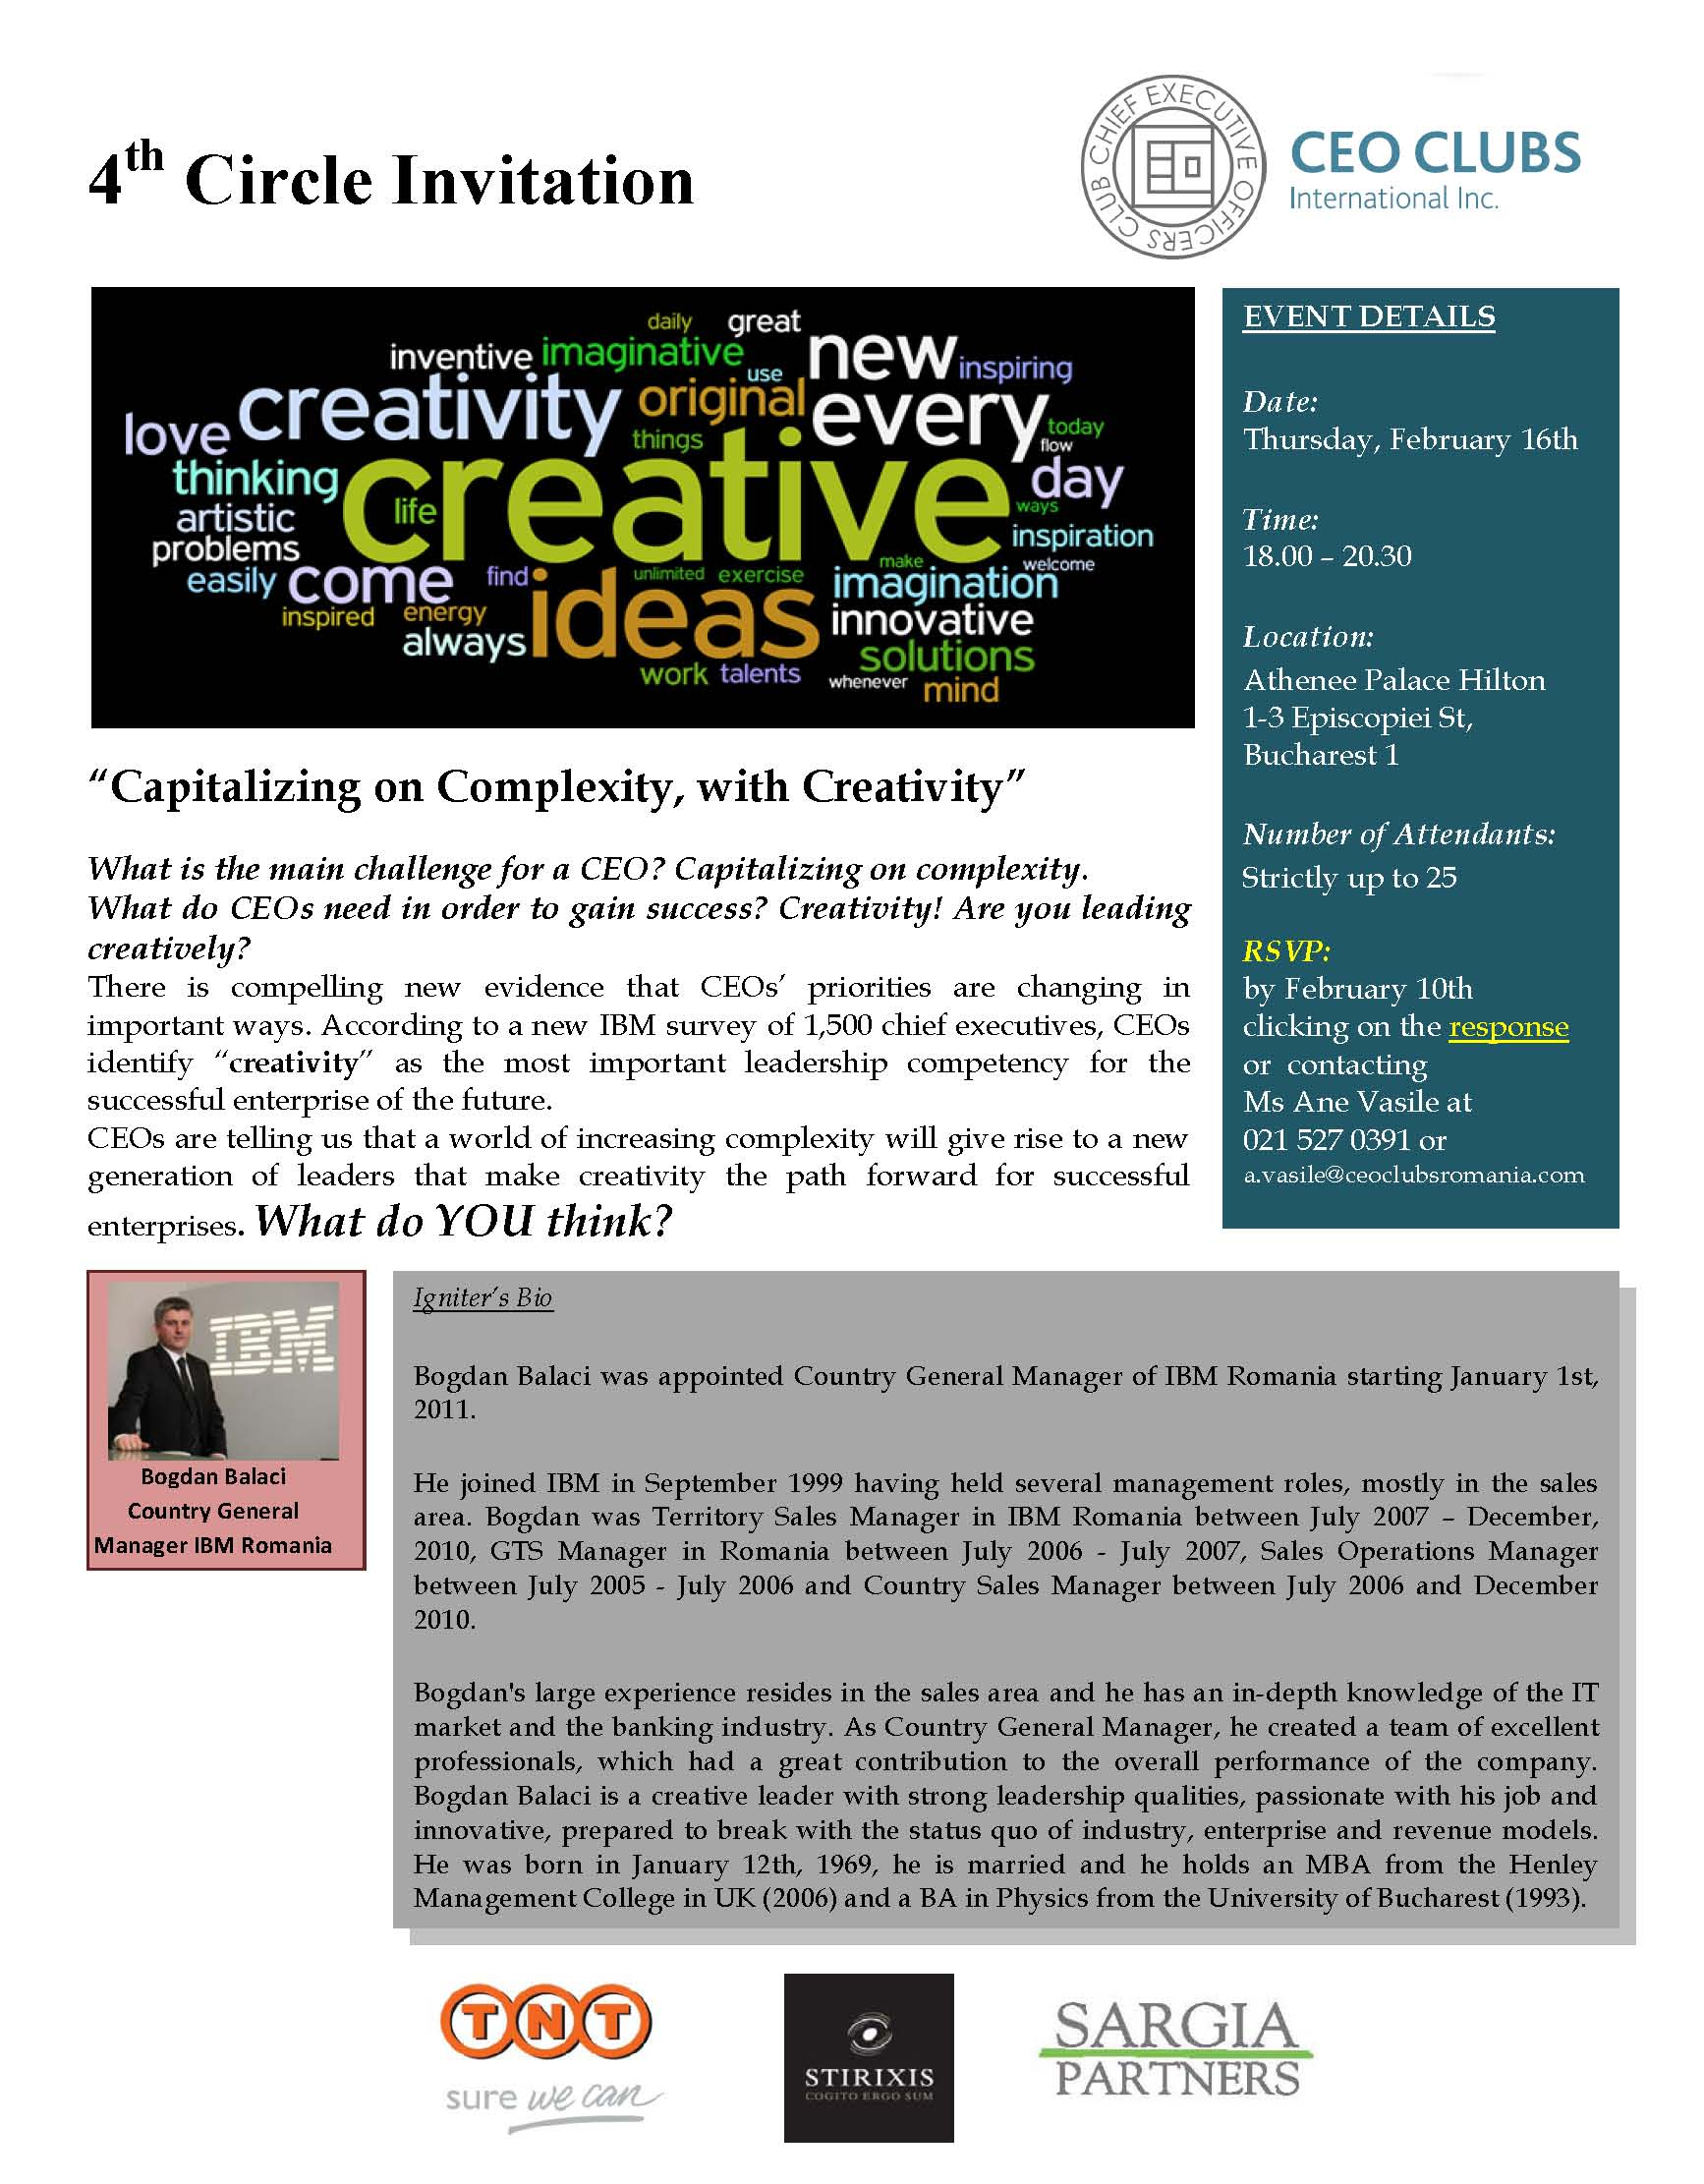 4th Circle: Capitalizing on Complexity, with Creativity